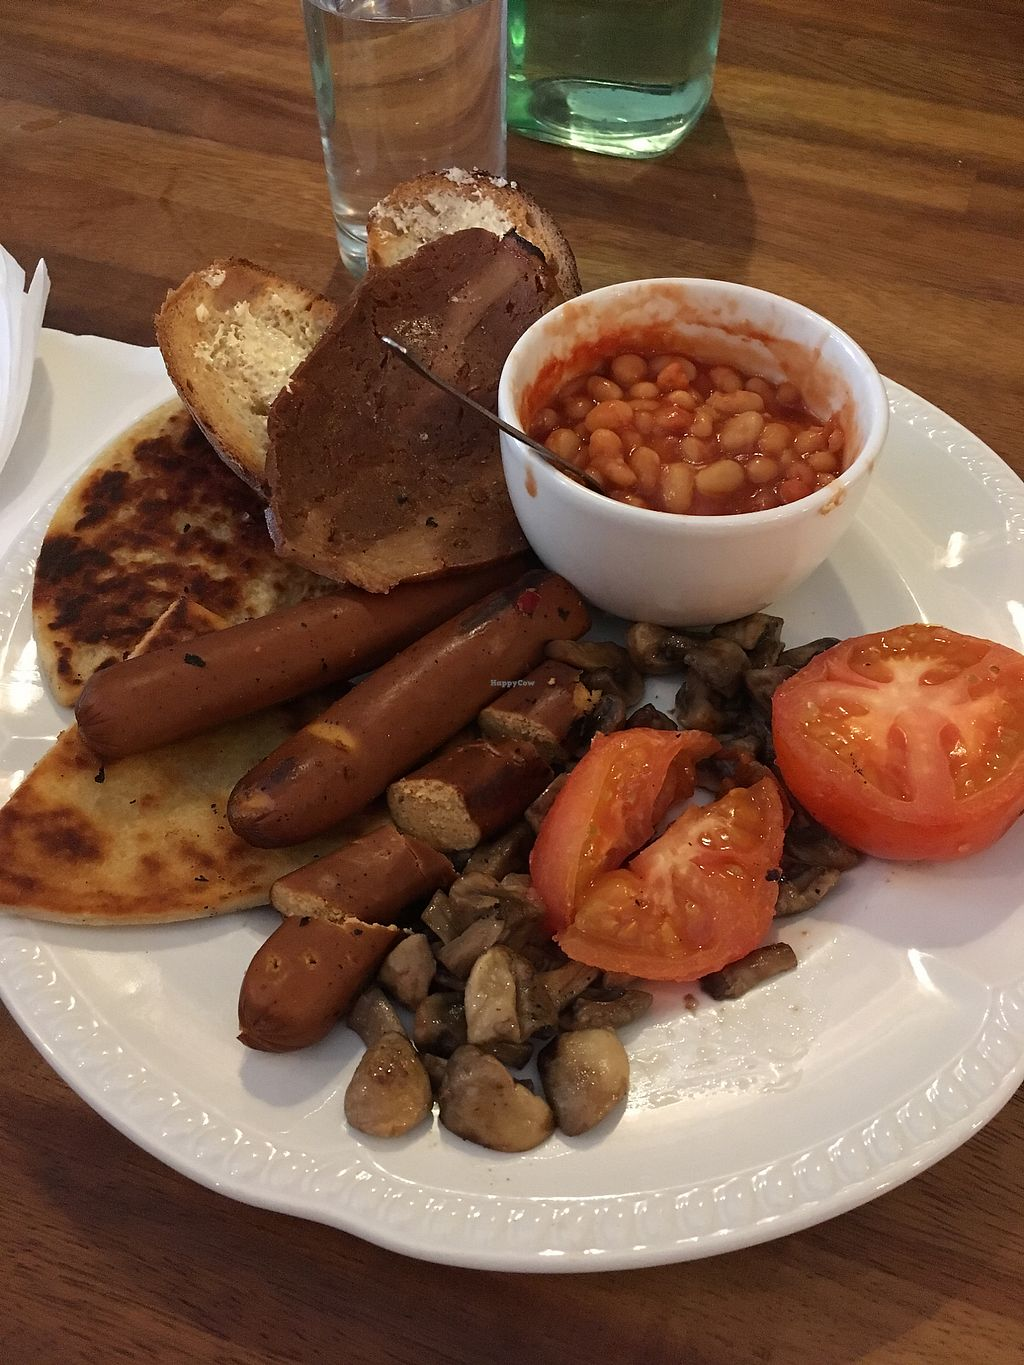 """Photo of Grassroots Cafe  by <a href=""""/members/profile/RhonaM"""">RhonaM</a> <br/>Vegan Breakfast <br/> April 1, 2018  - <a href='/contact/abuse/image/98559/379438'>Report</a>"""